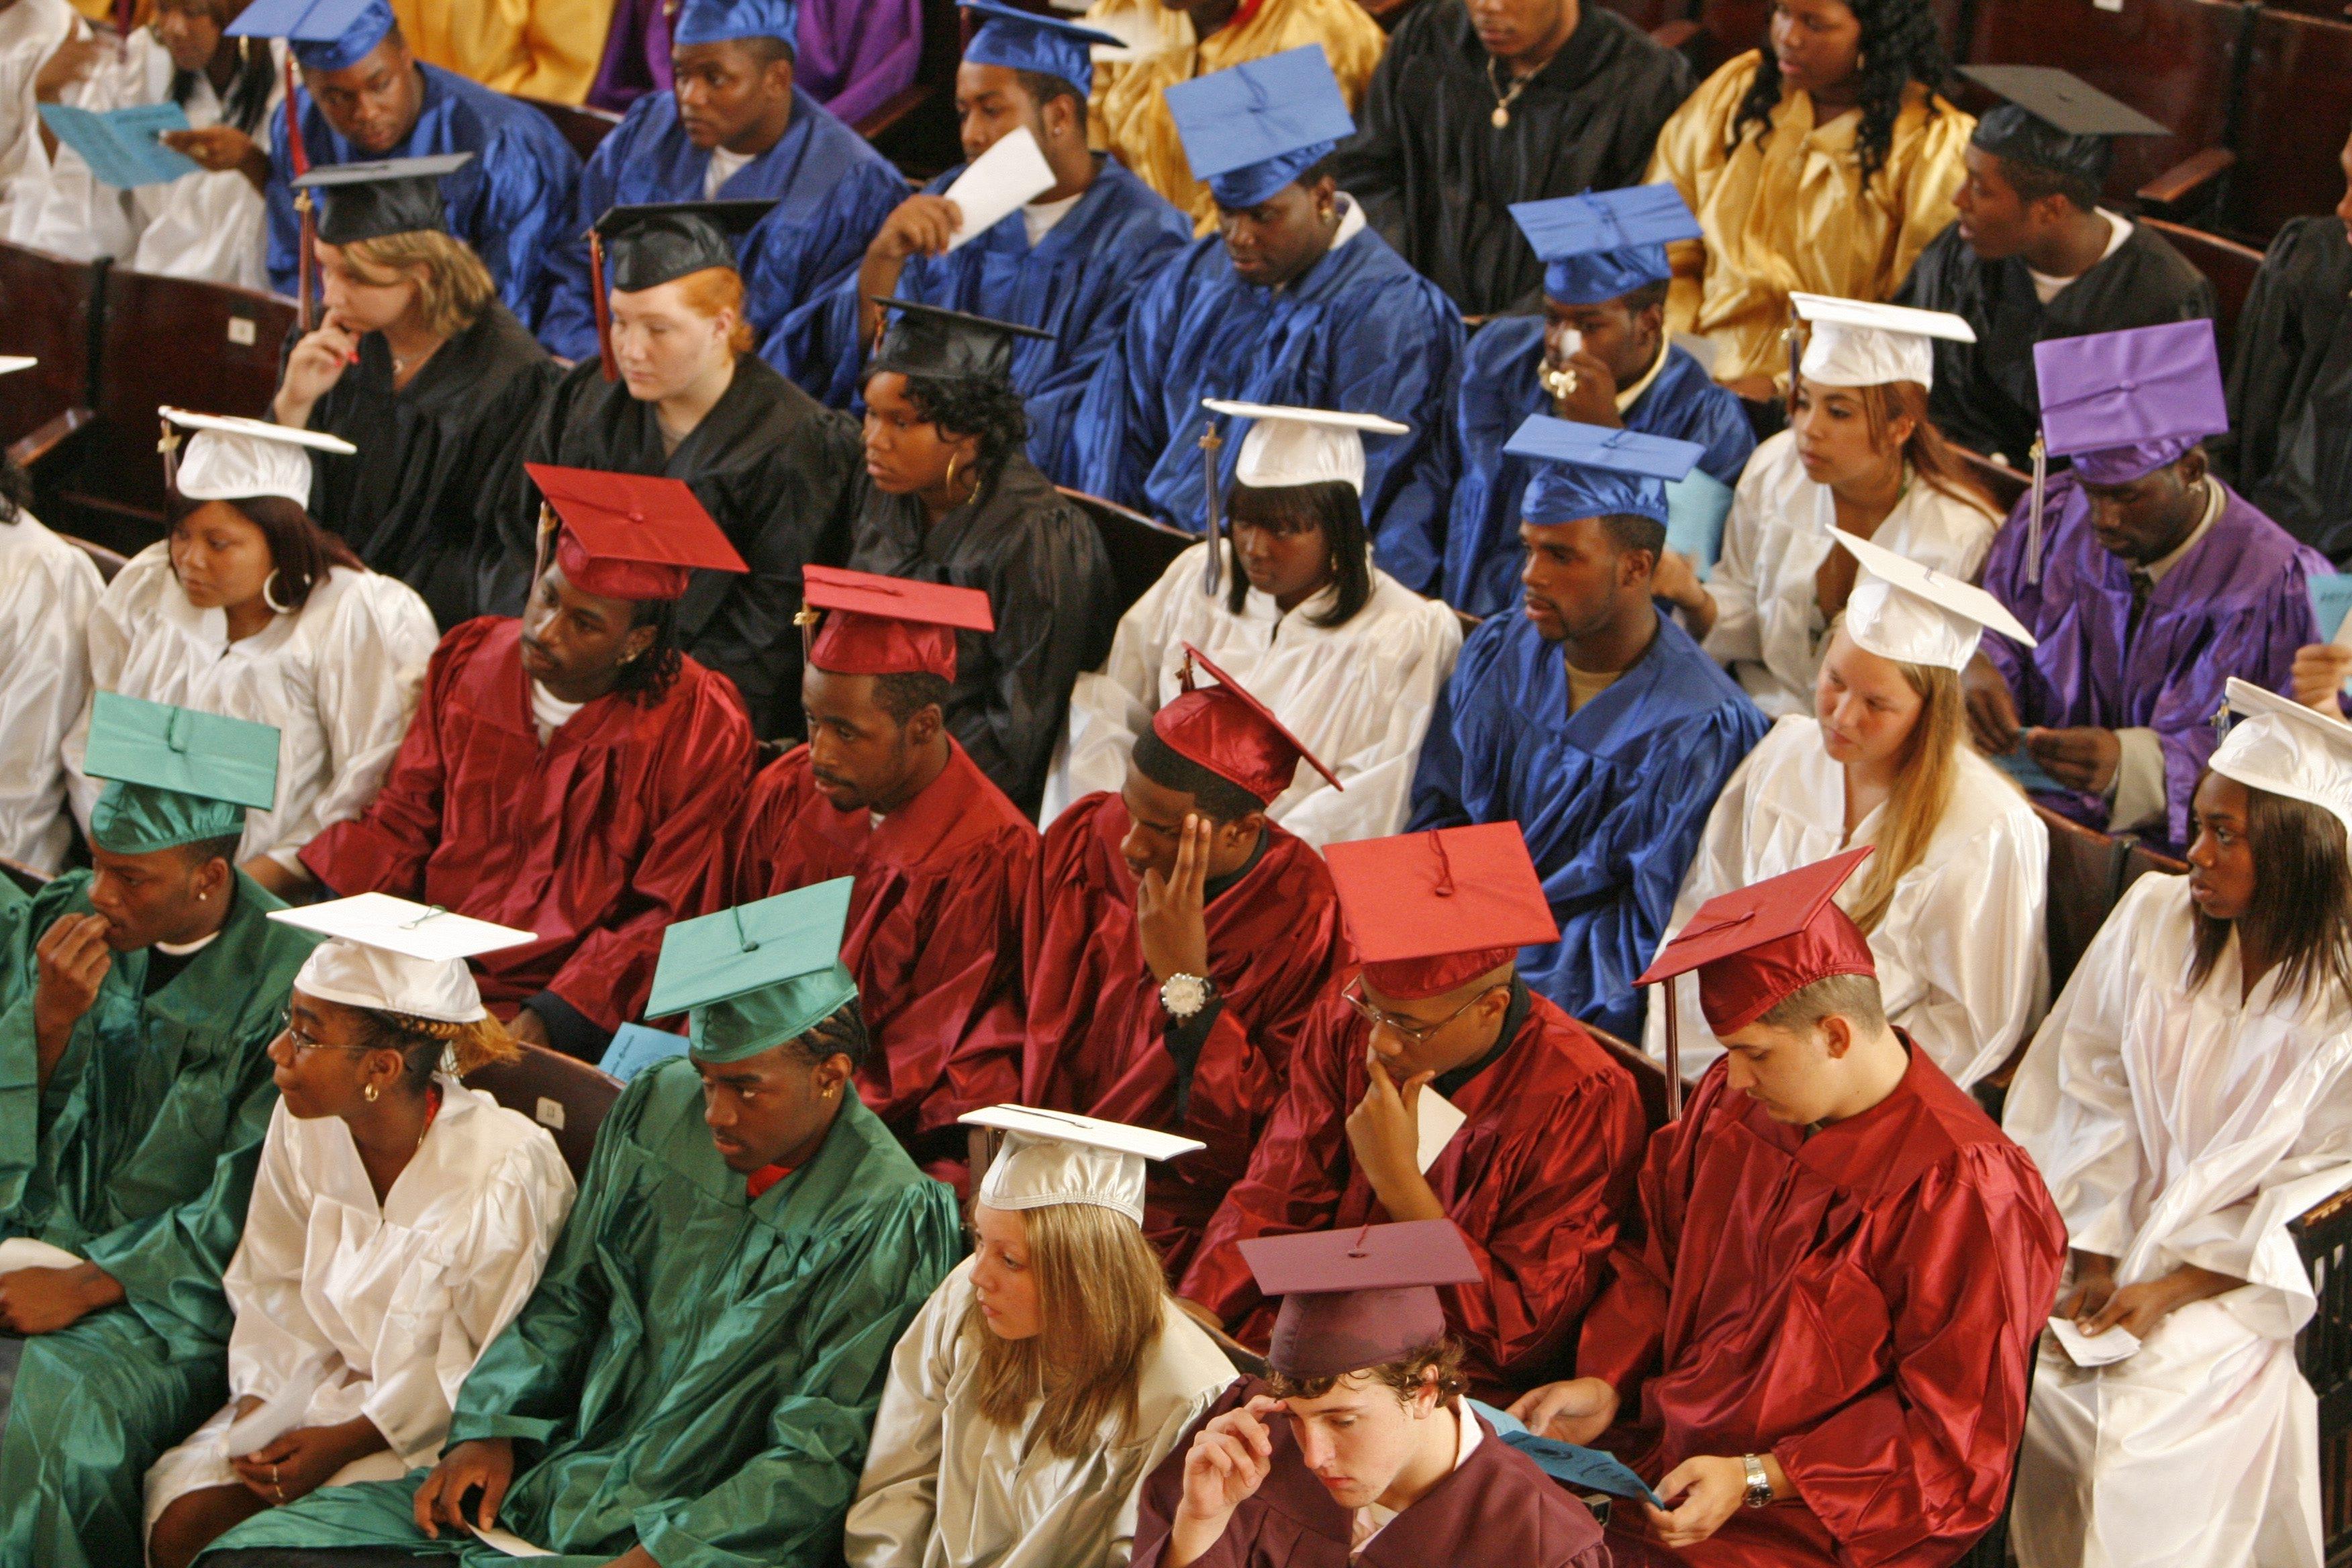 The Buffalo School District has shown signs of progress lately, including higher graduation rates. (Buffalo News file photo)